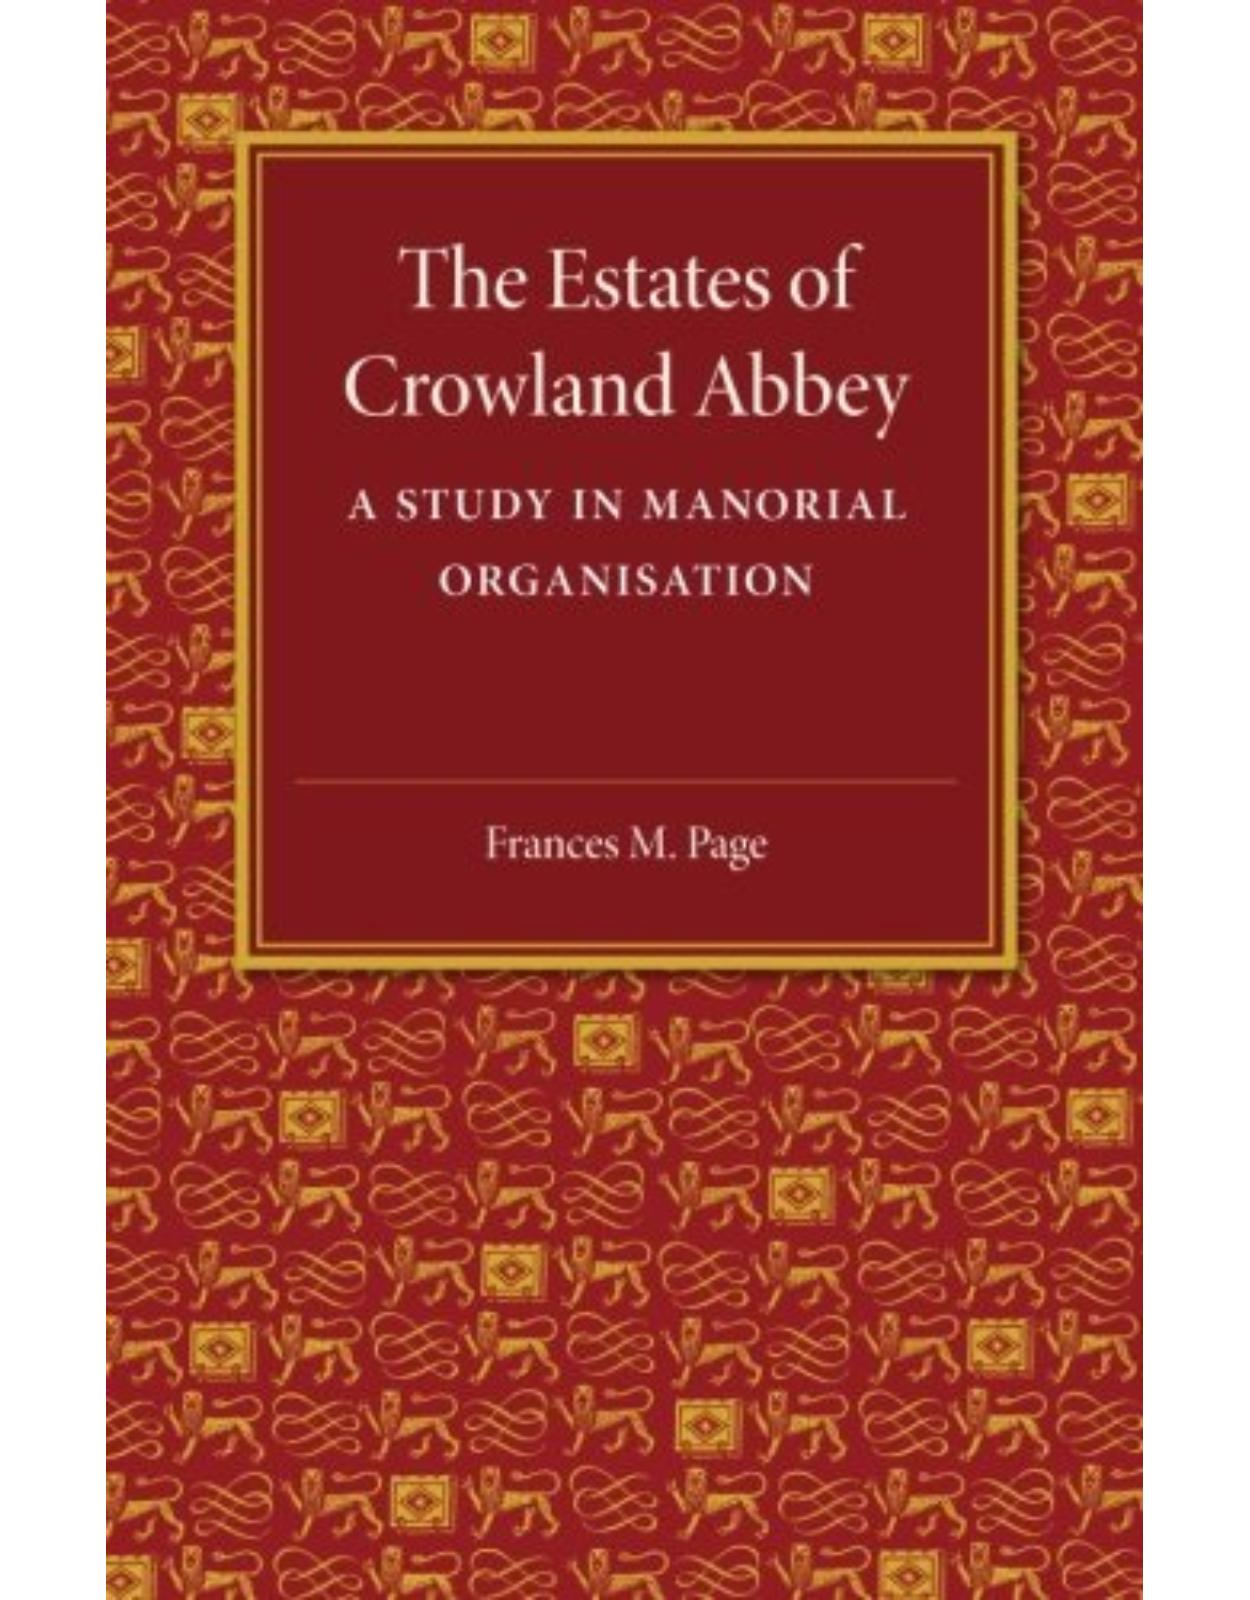 The Estates of Crowland Abbey: A Study in Manorial Organisation